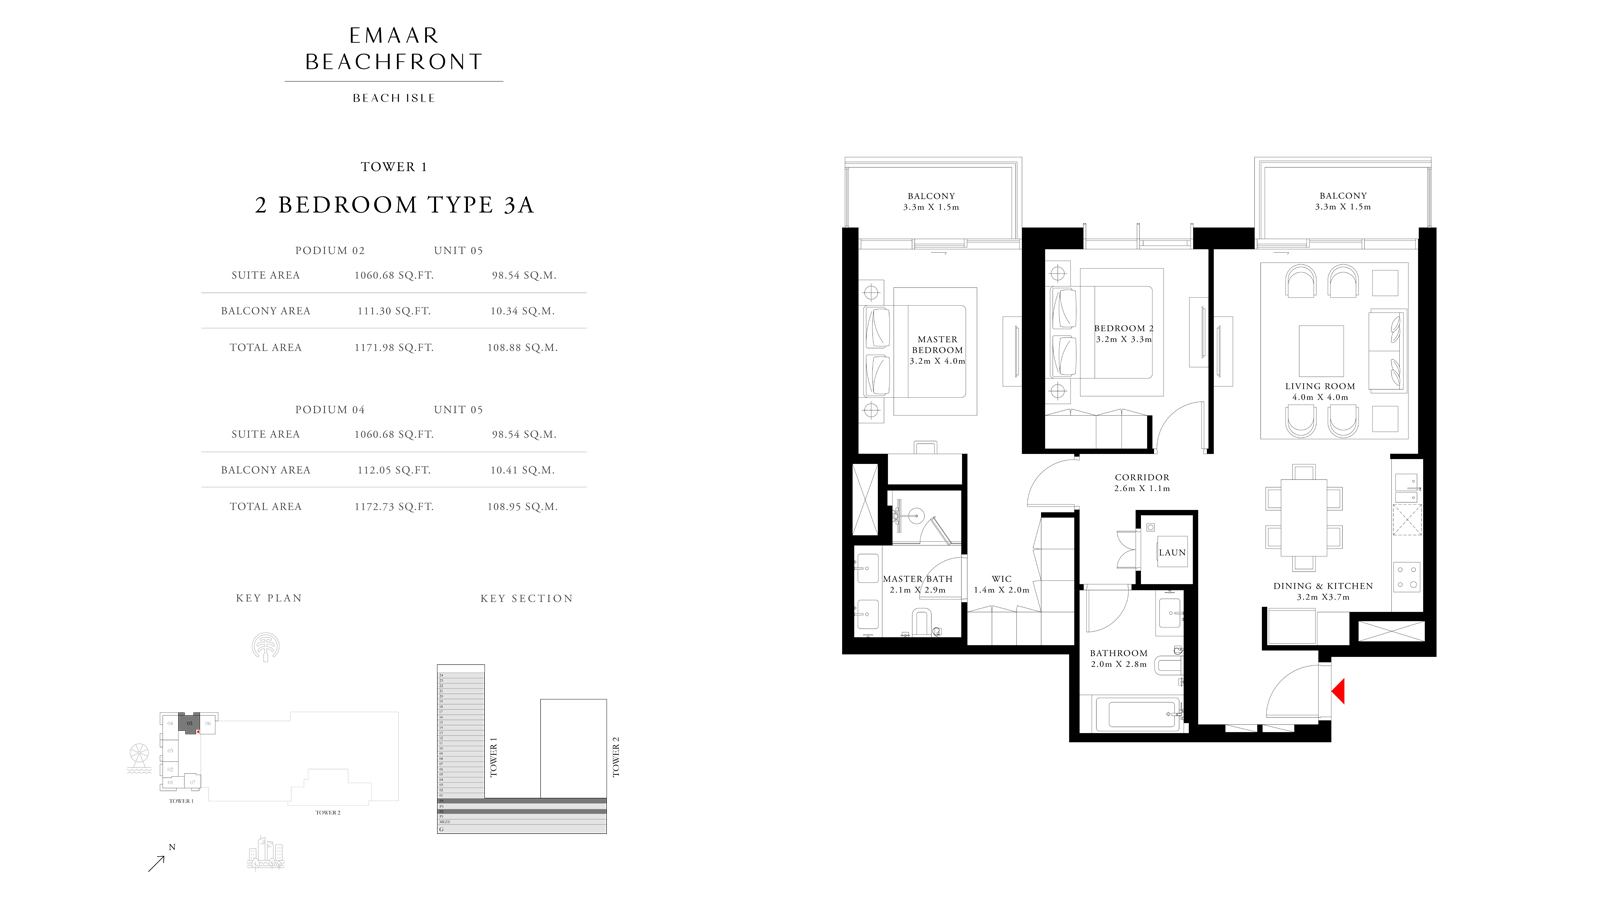 2 Bedroom Type 3A Tower 1, Size 1172    sq. ft.